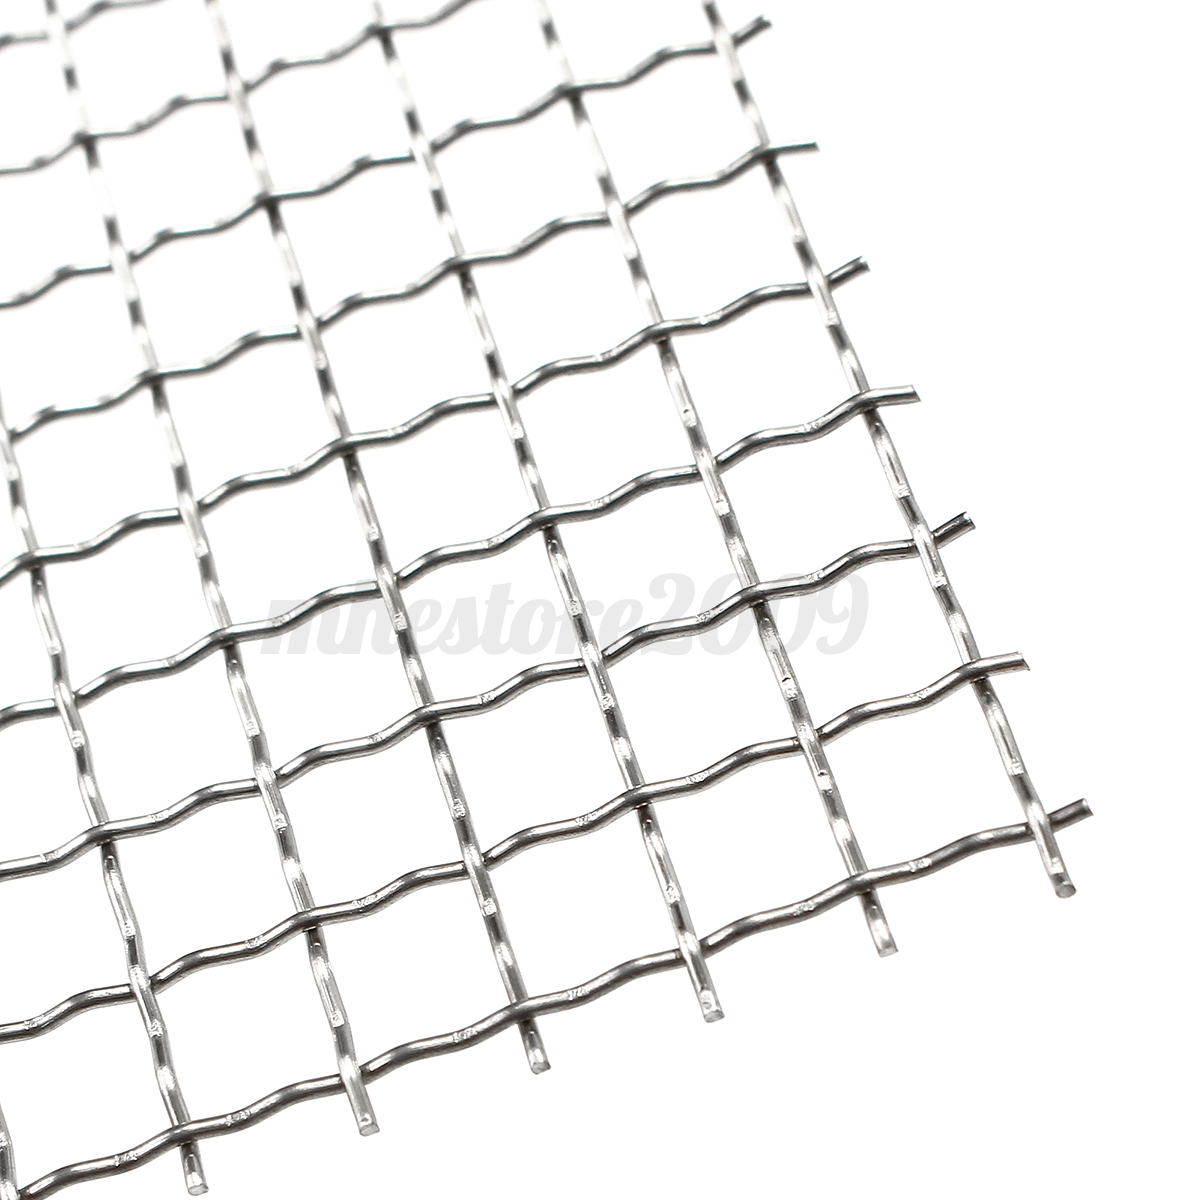 Stainless Steel 304 Mesh Filtration 4 Woven Wire Cloth